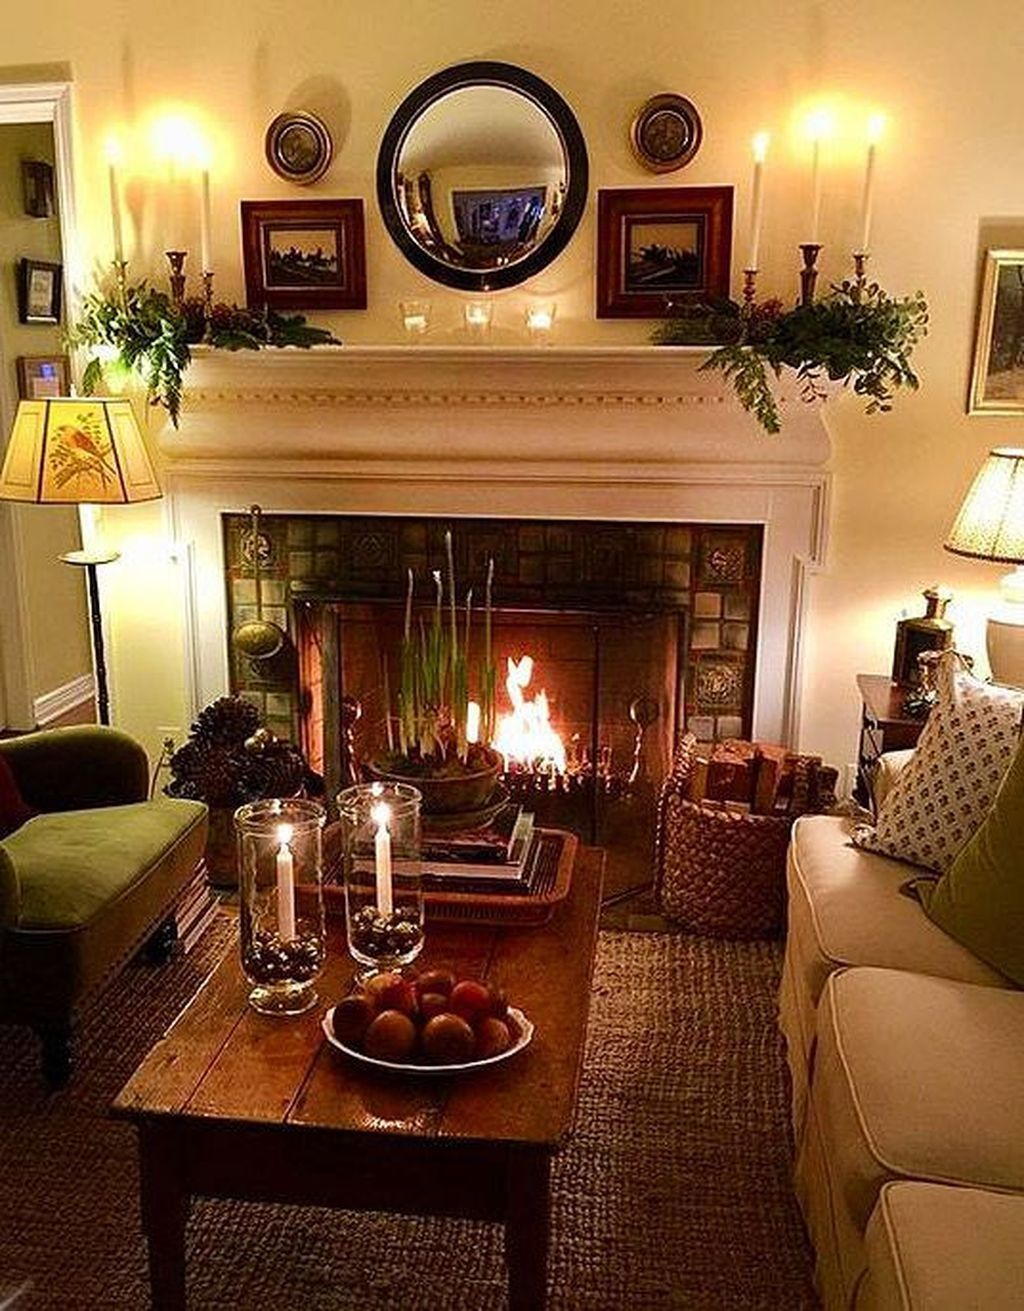 40 Stunning Living Room Decoration Ideas With Fireplace In 2020